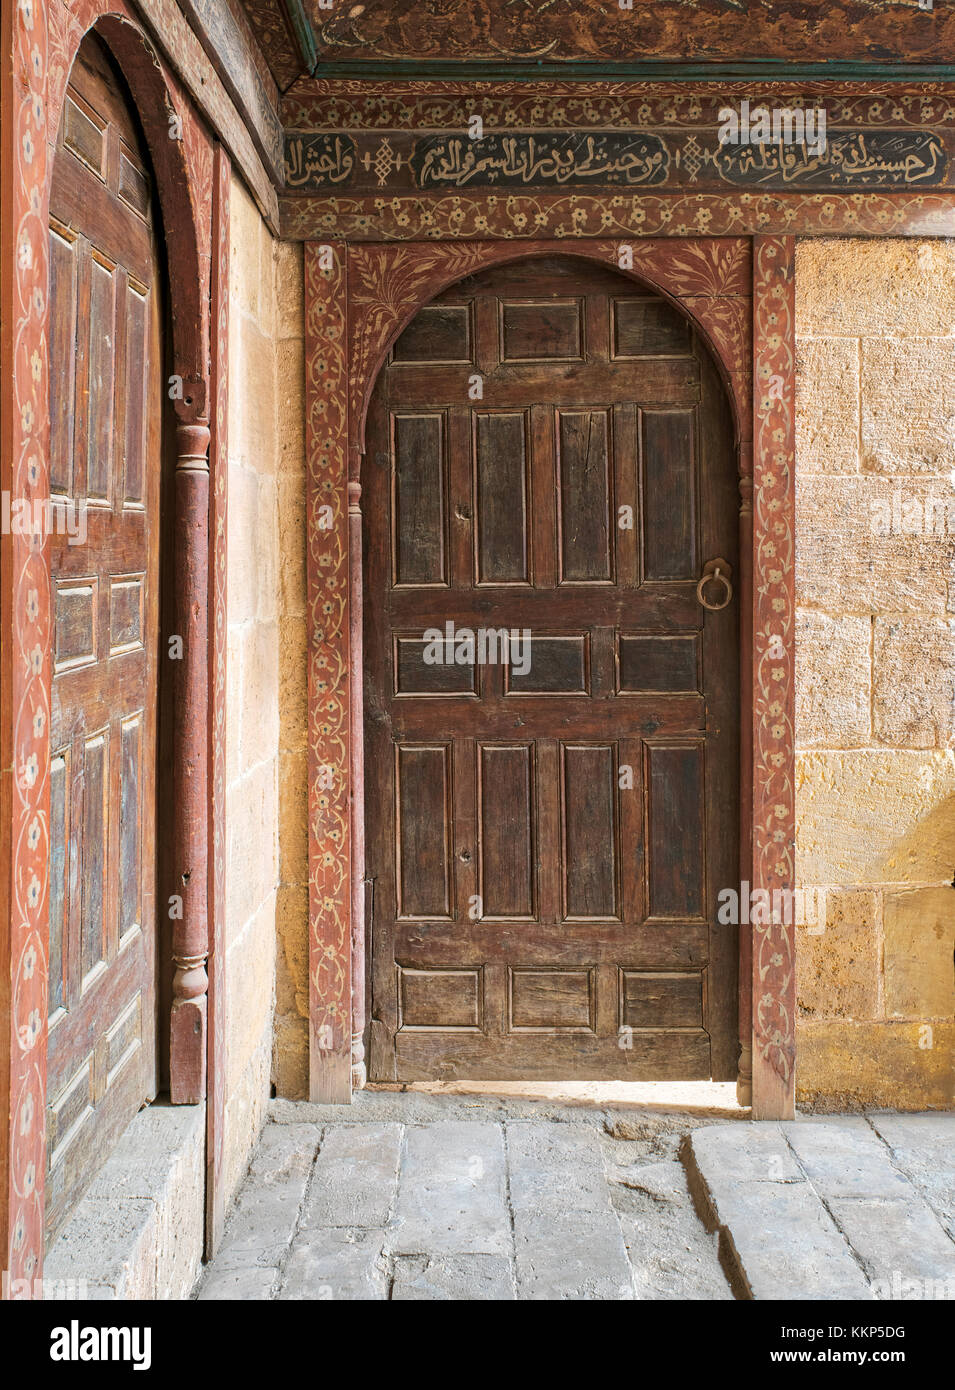 Two wooden aged ornate vaulted perpendicular doors on stone bricks walls, Medieval Cairo, Egypt - Stock Image